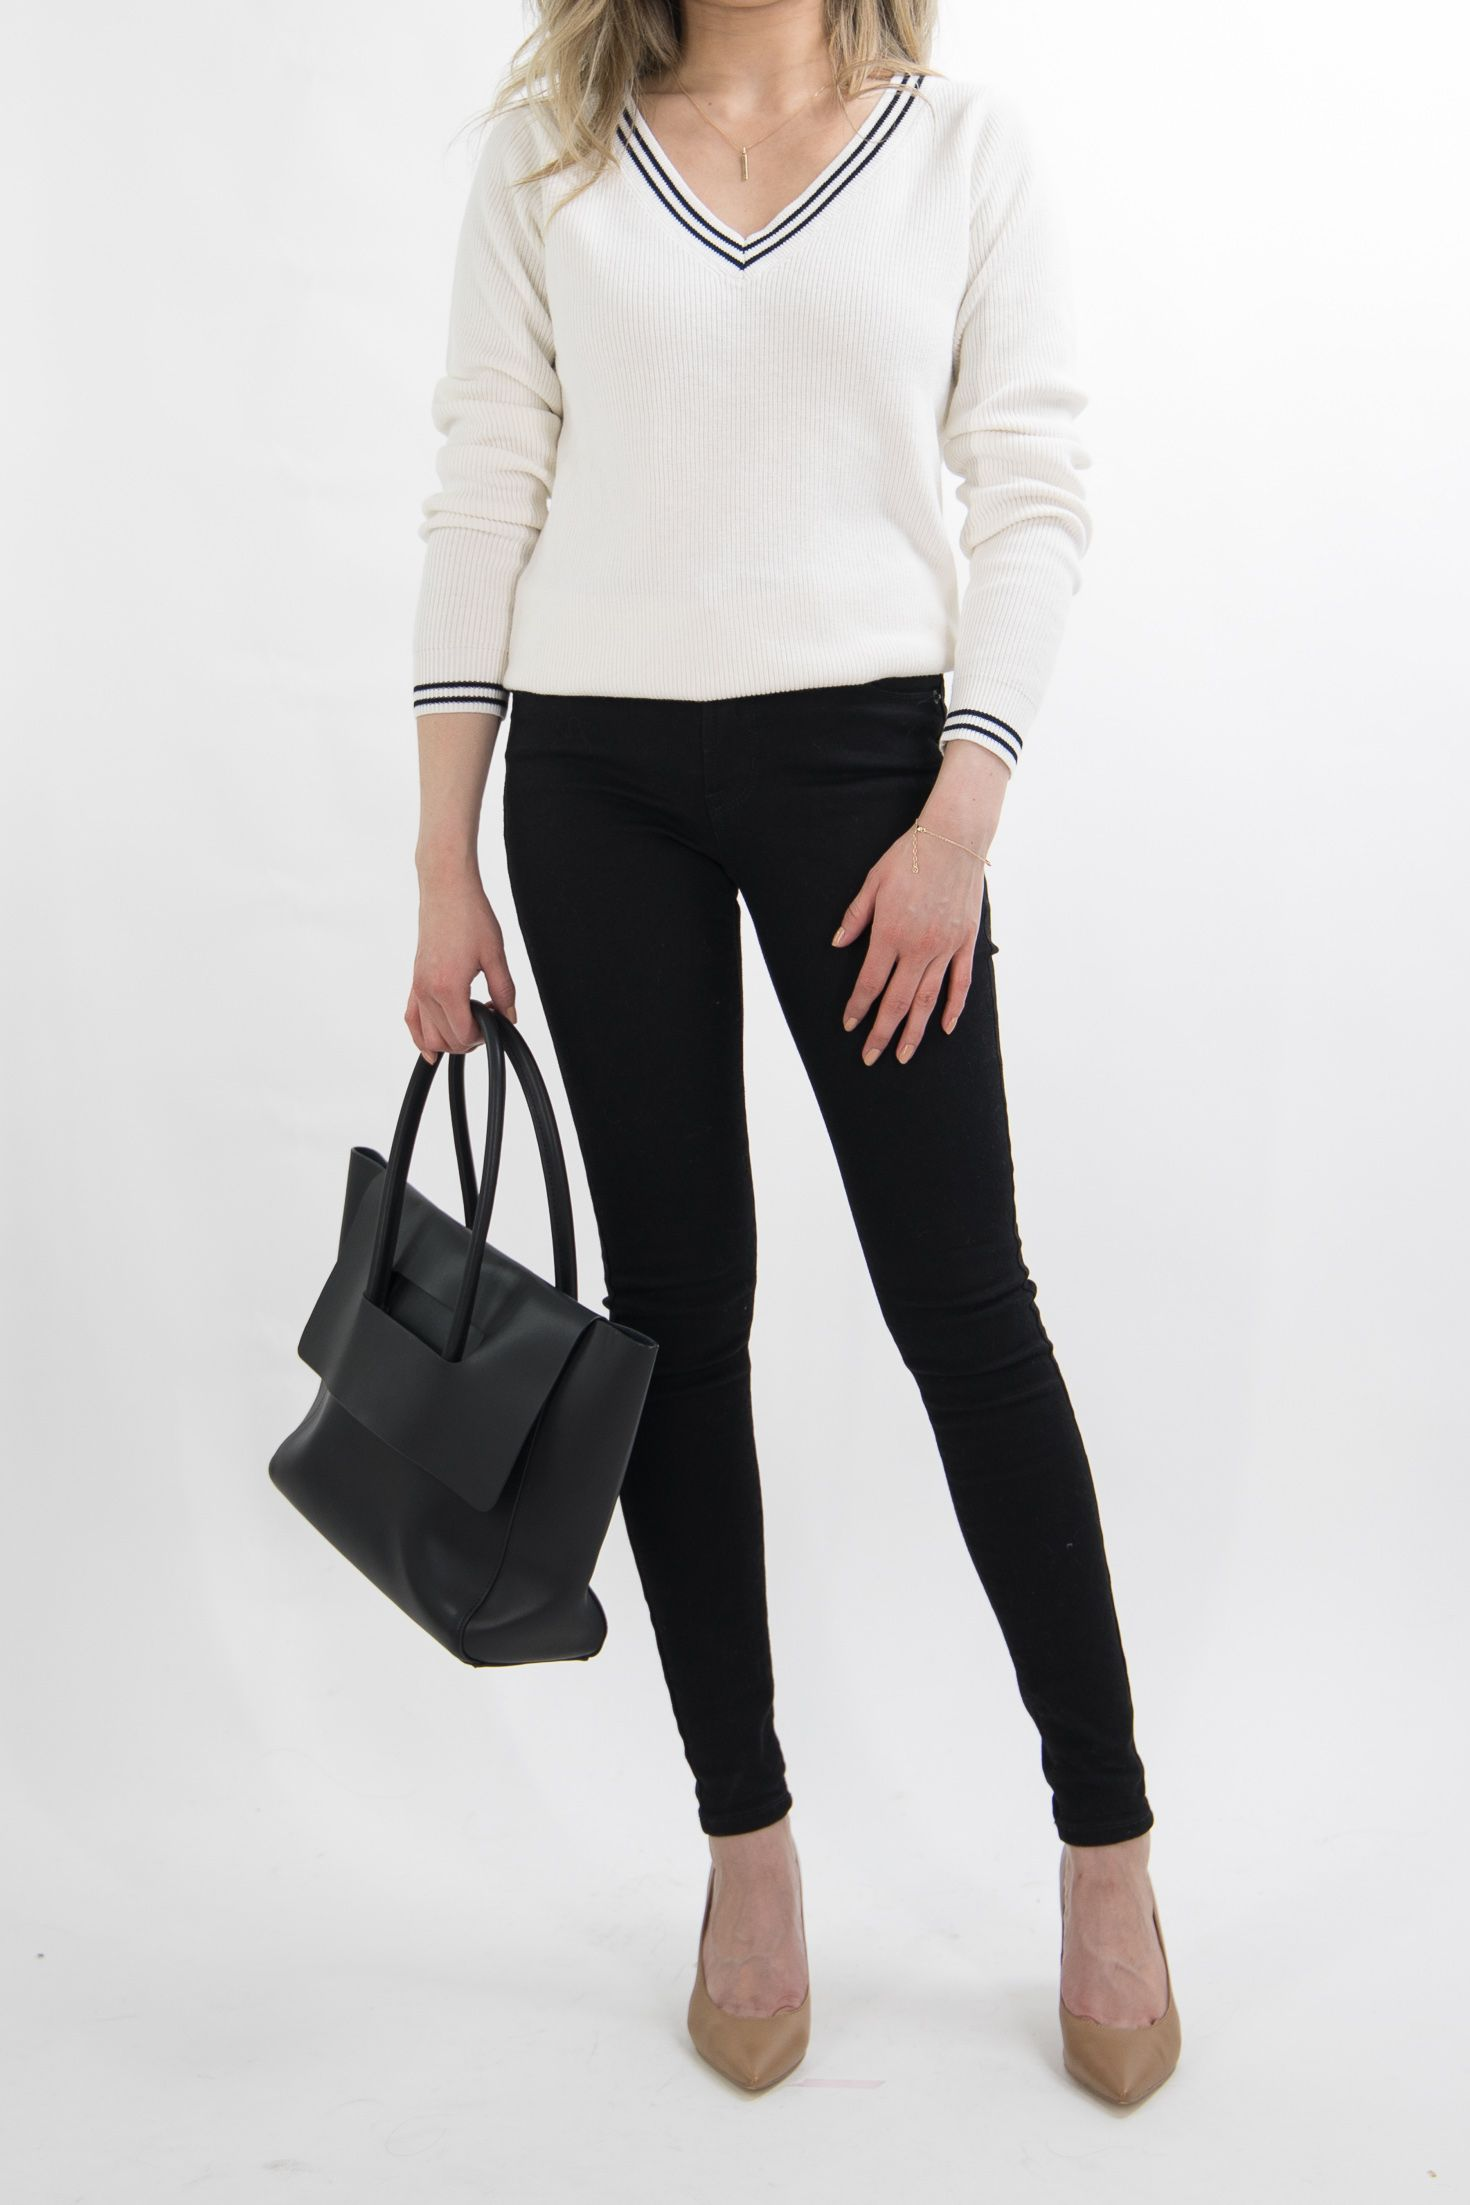 1 MONTH of Business Casual Work Outfit Ideas for Women ...